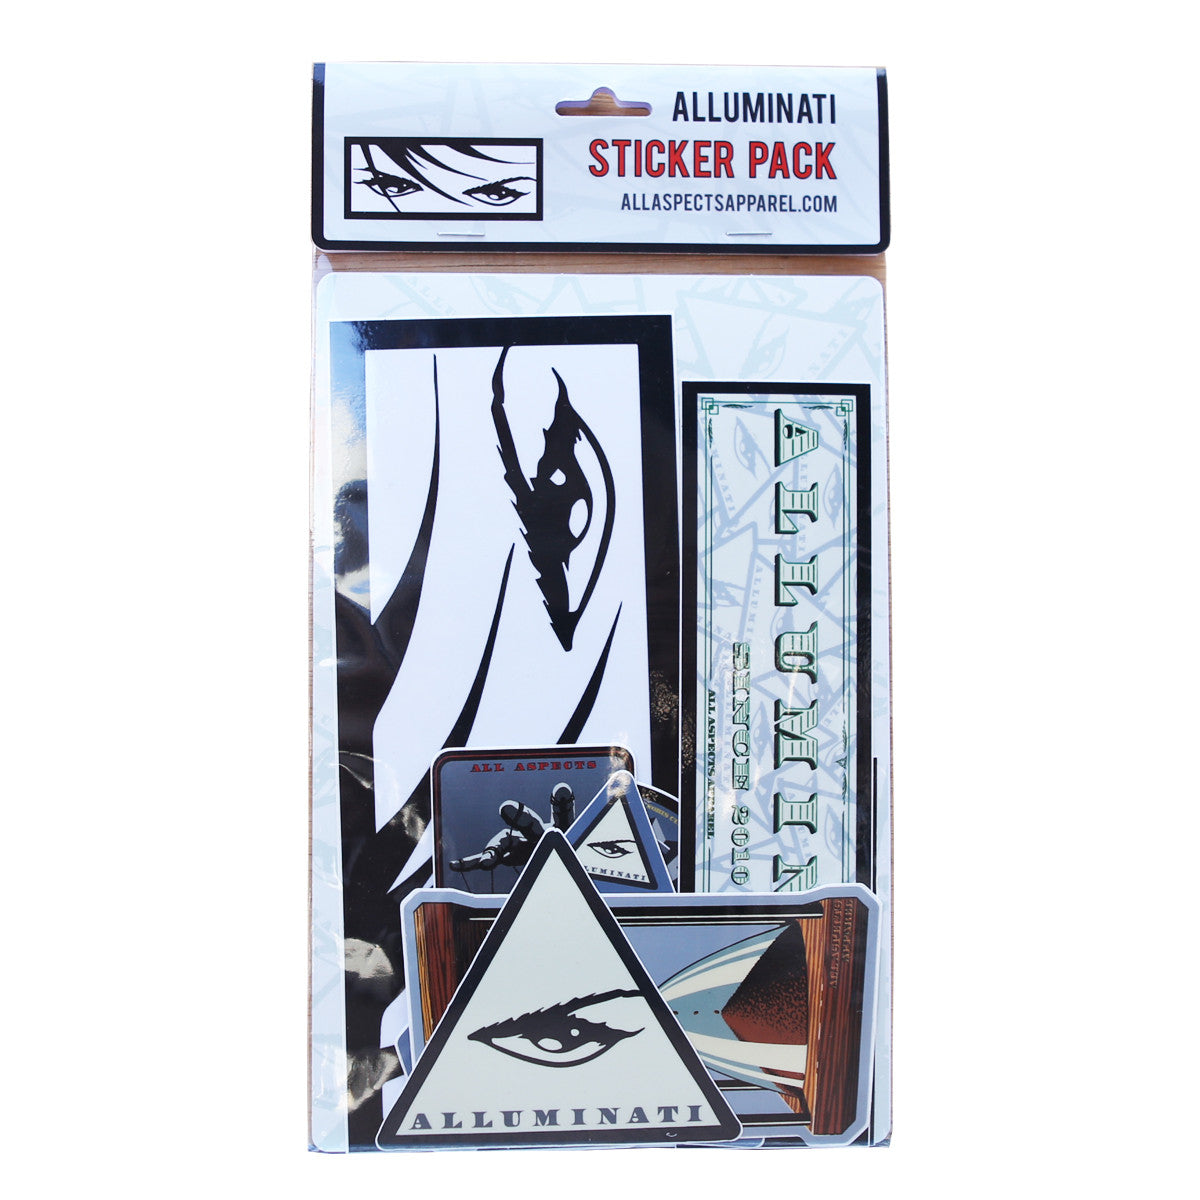 Alluminati Sticker Pack